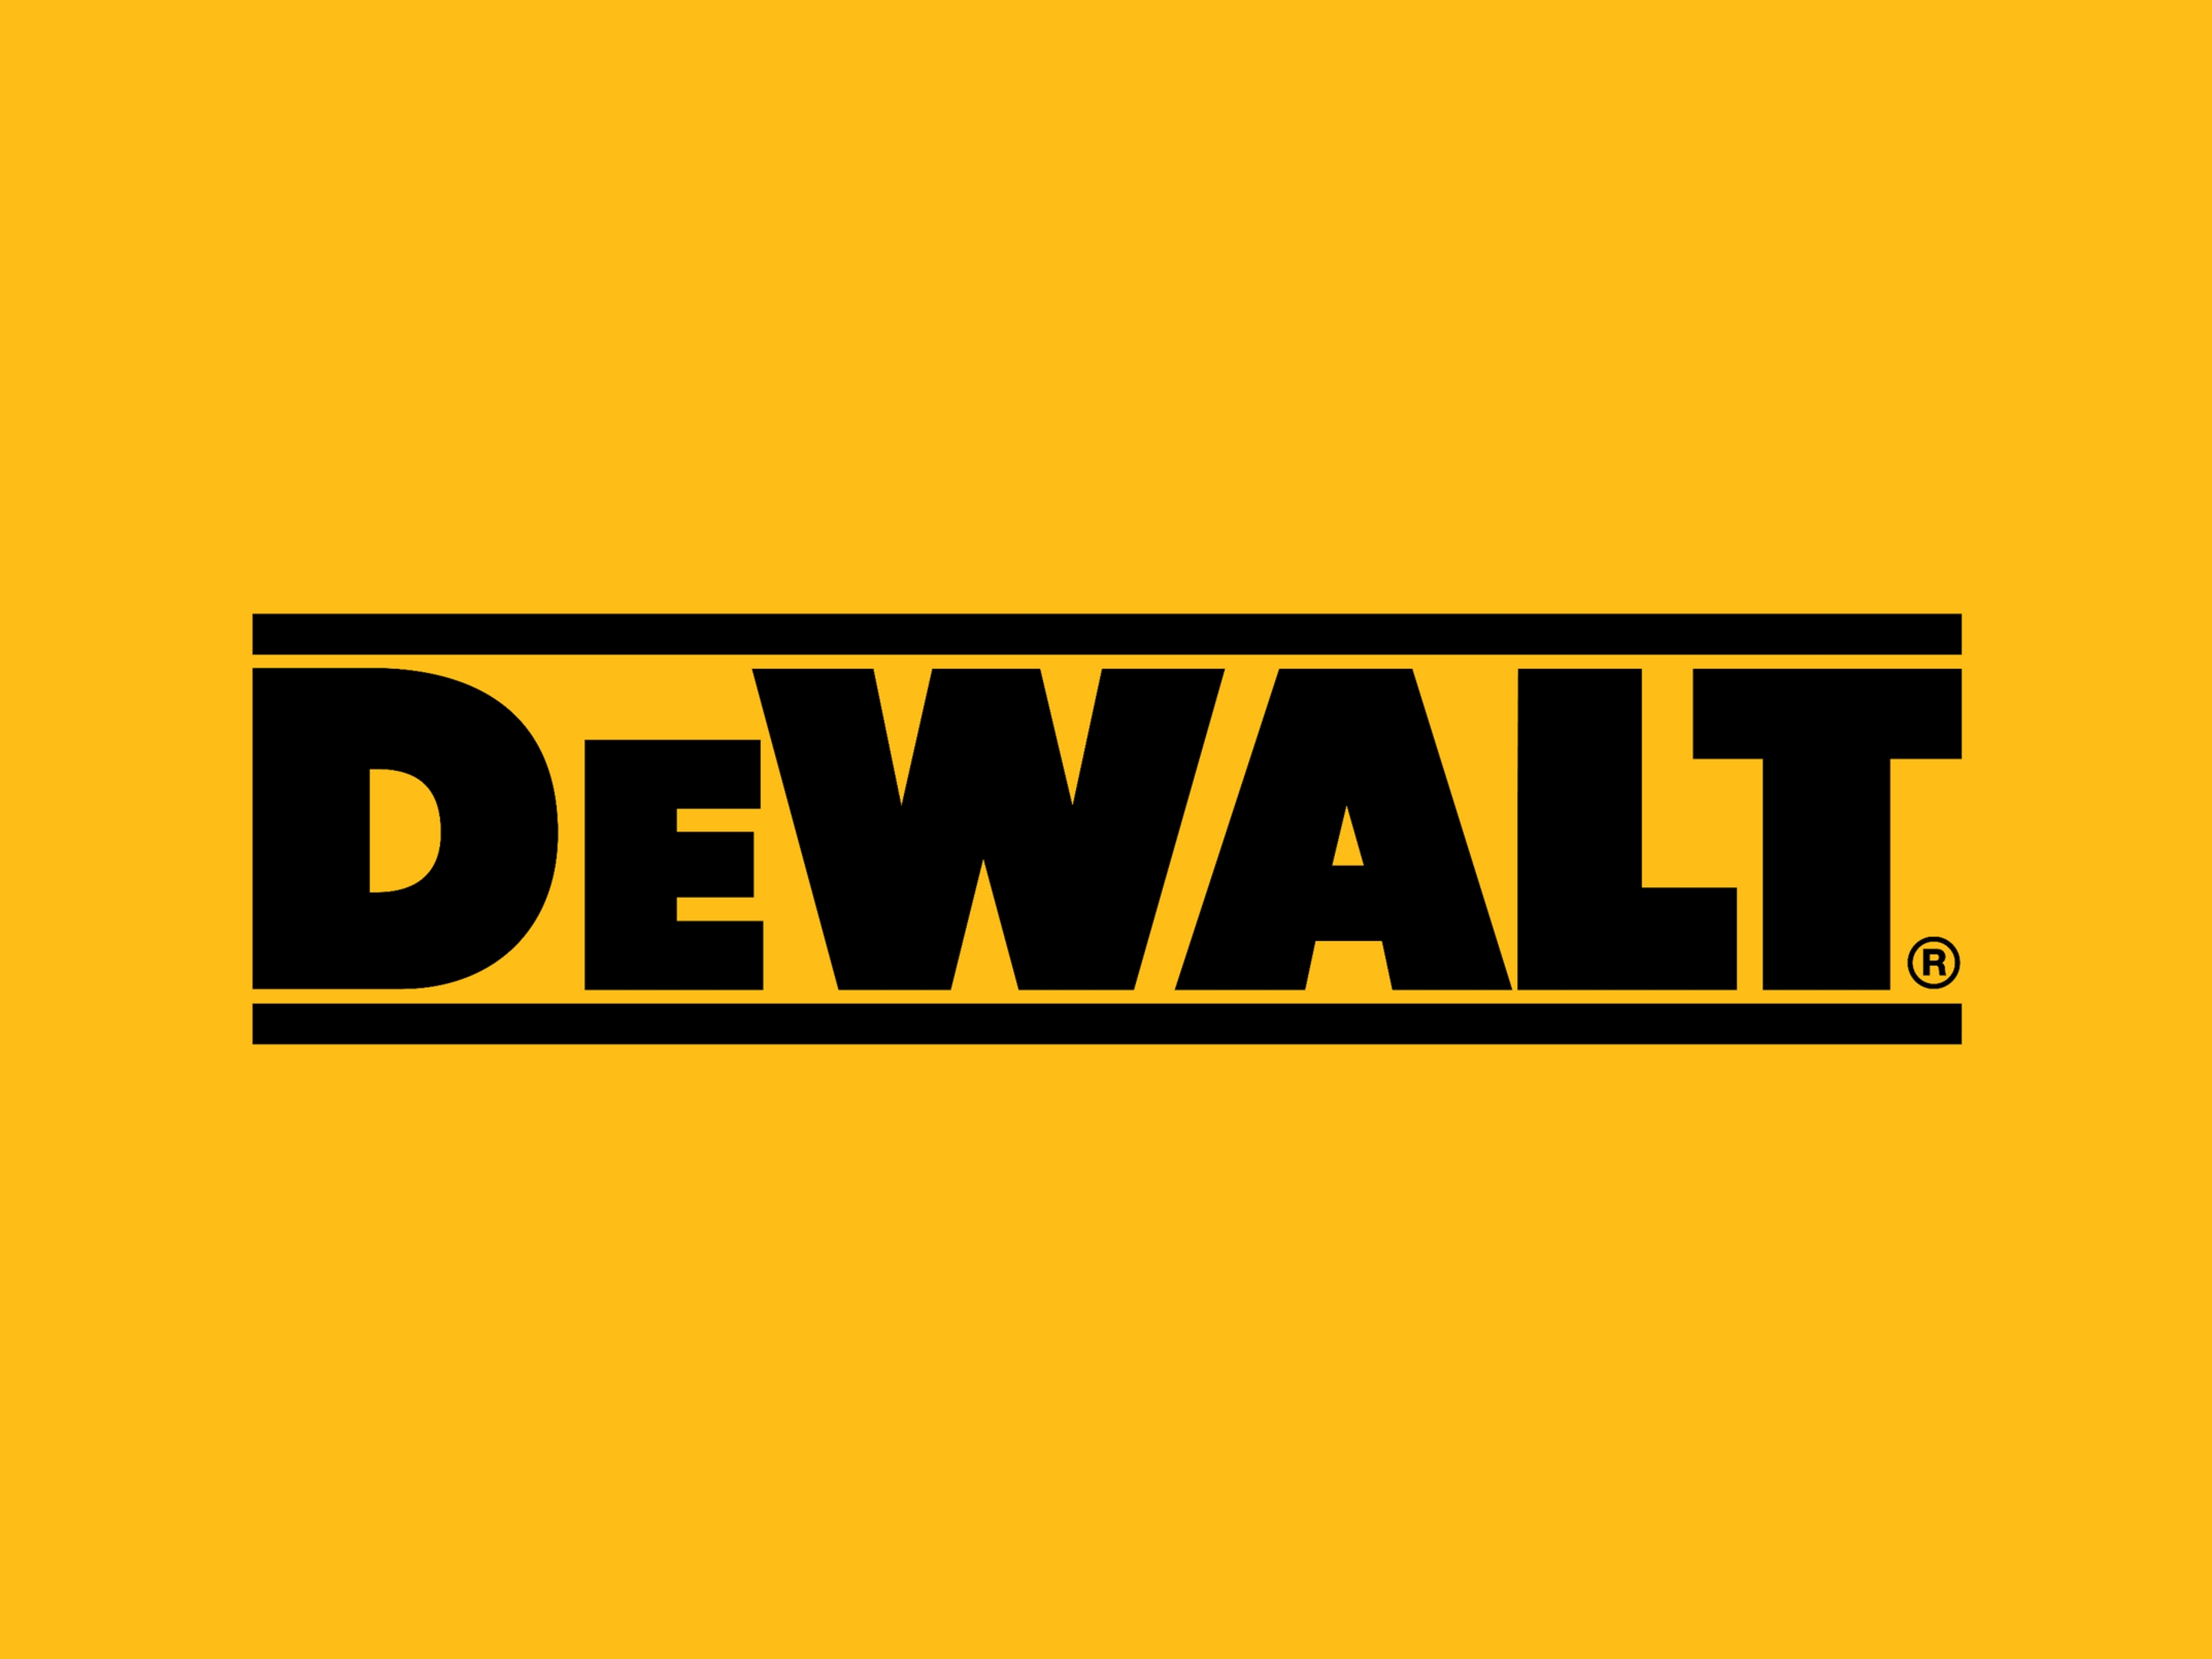 Dewalt - WBA Club Partner